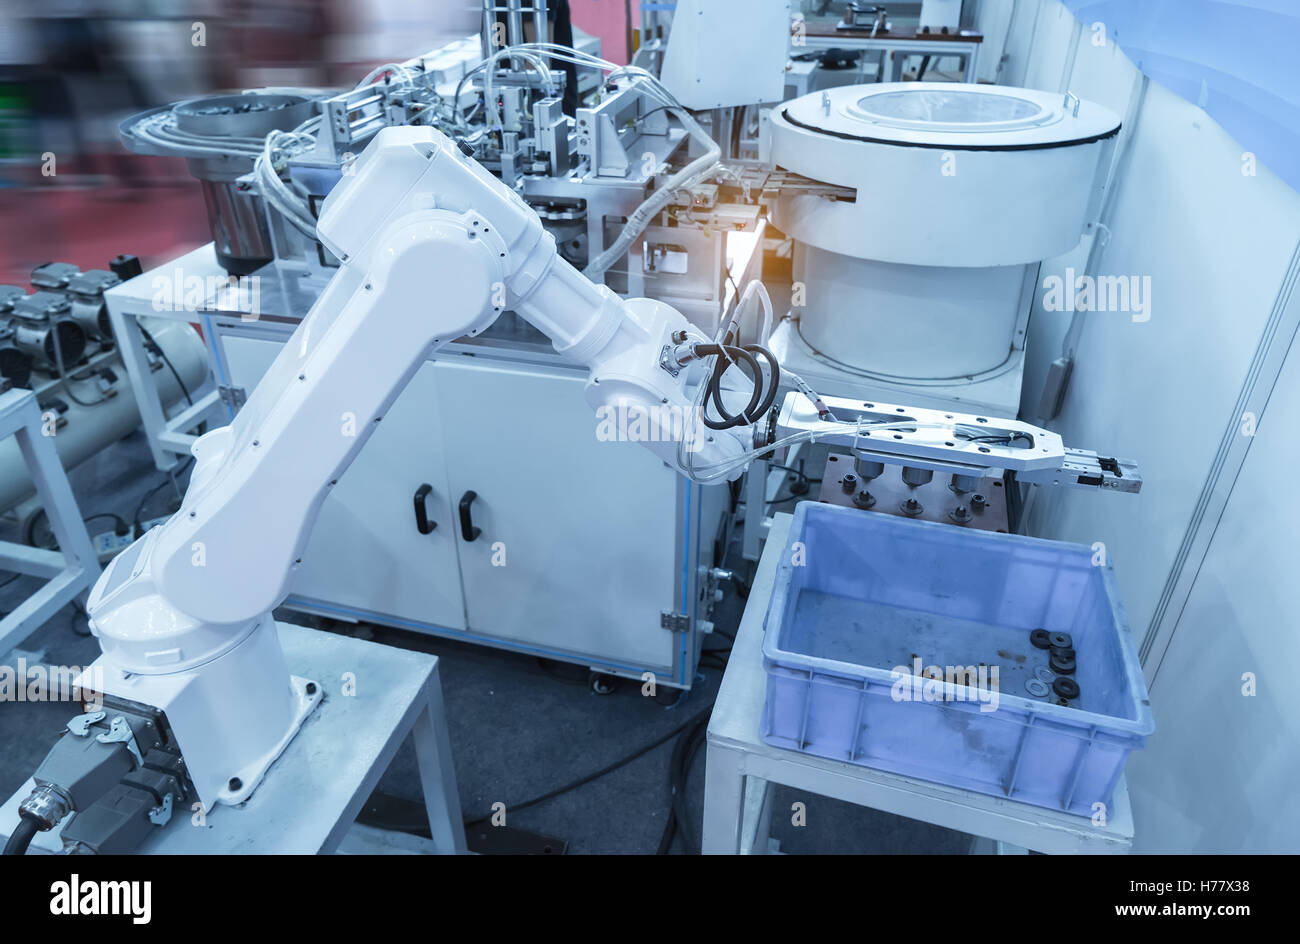 Robotic arm at production line in factory - Stock Image